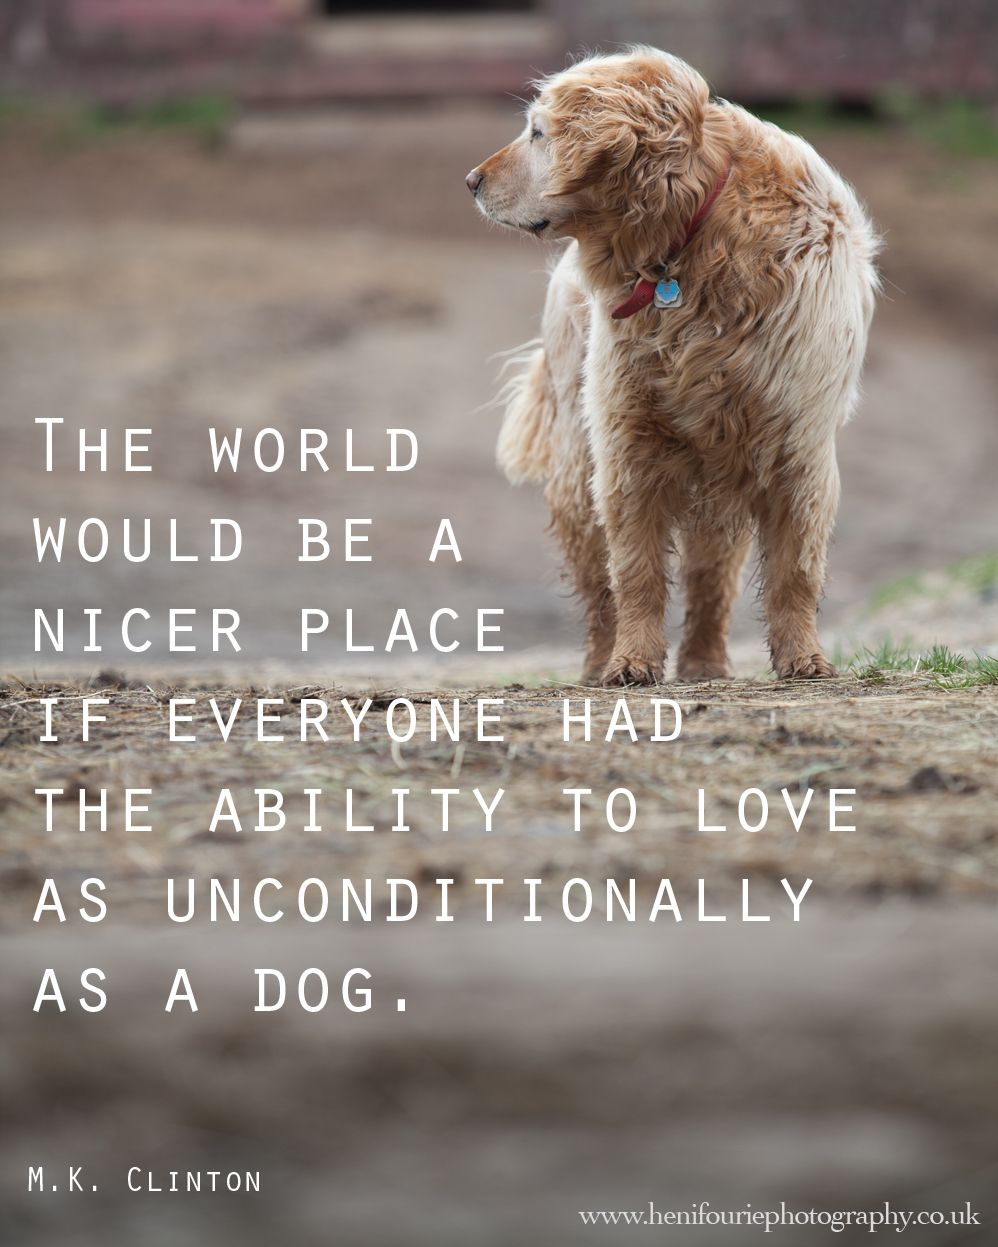 Man's Best Friend Quotes : man's, friend, quotes, Quotes, About, Friend, Twitter, Bokkor